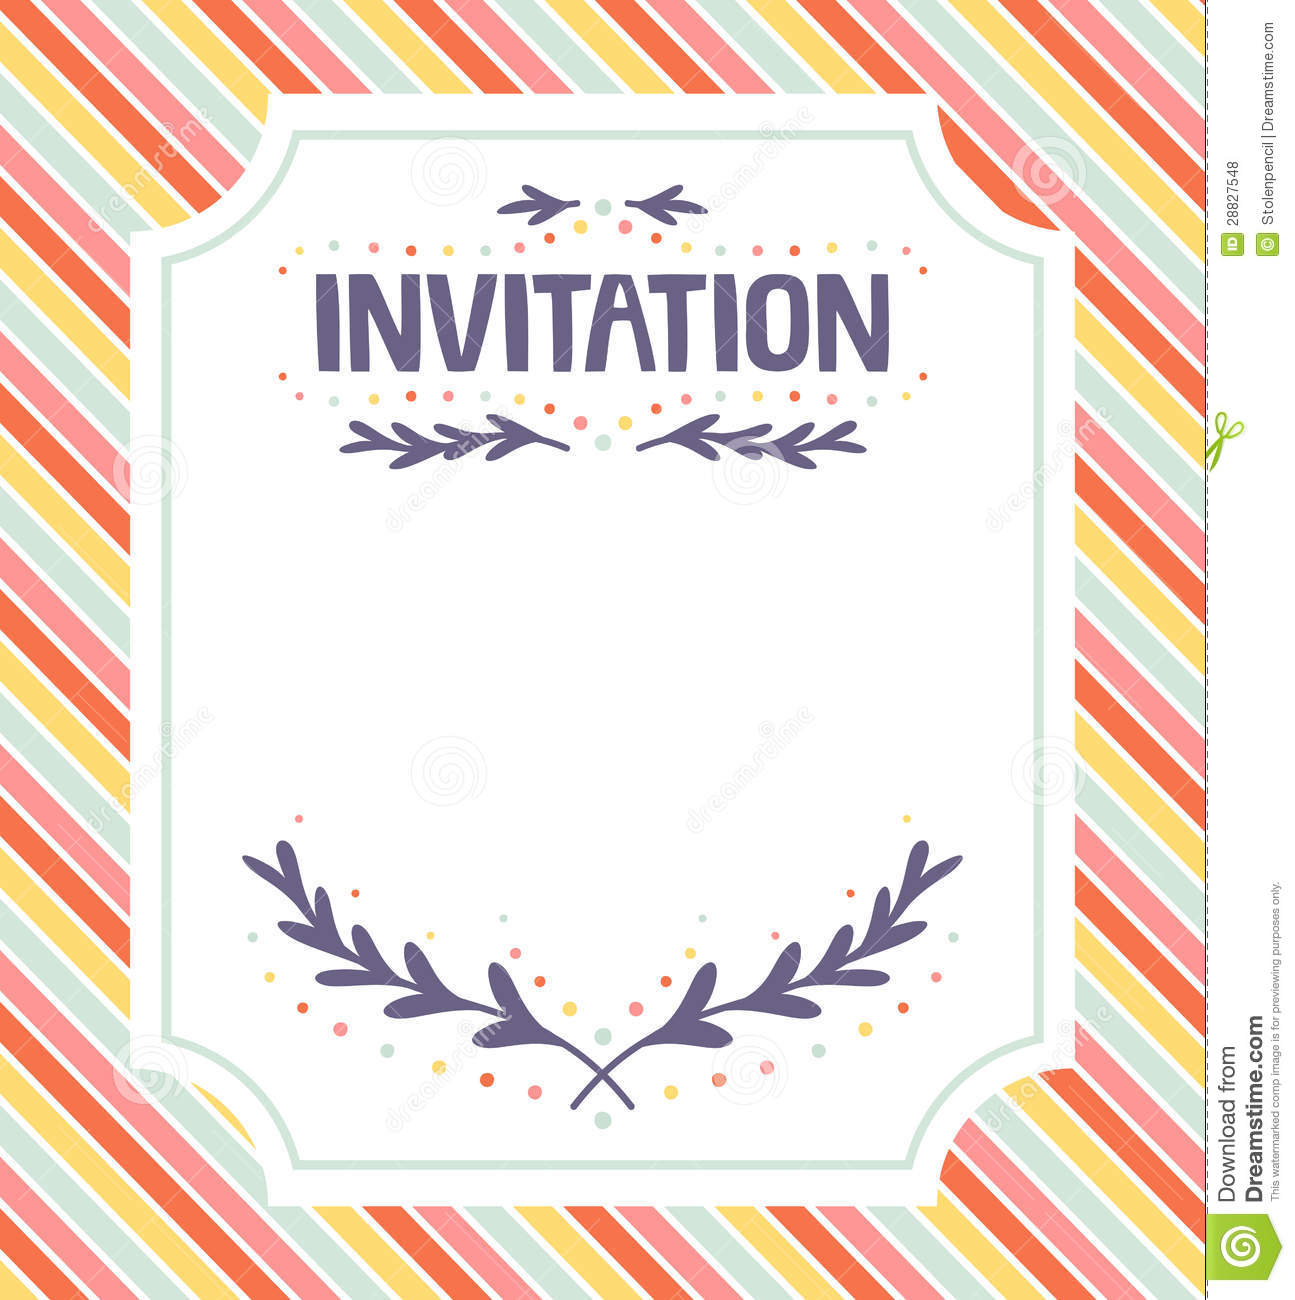 Invitation Template Royalty Free Photos Image 28827548 – Invitation Templete